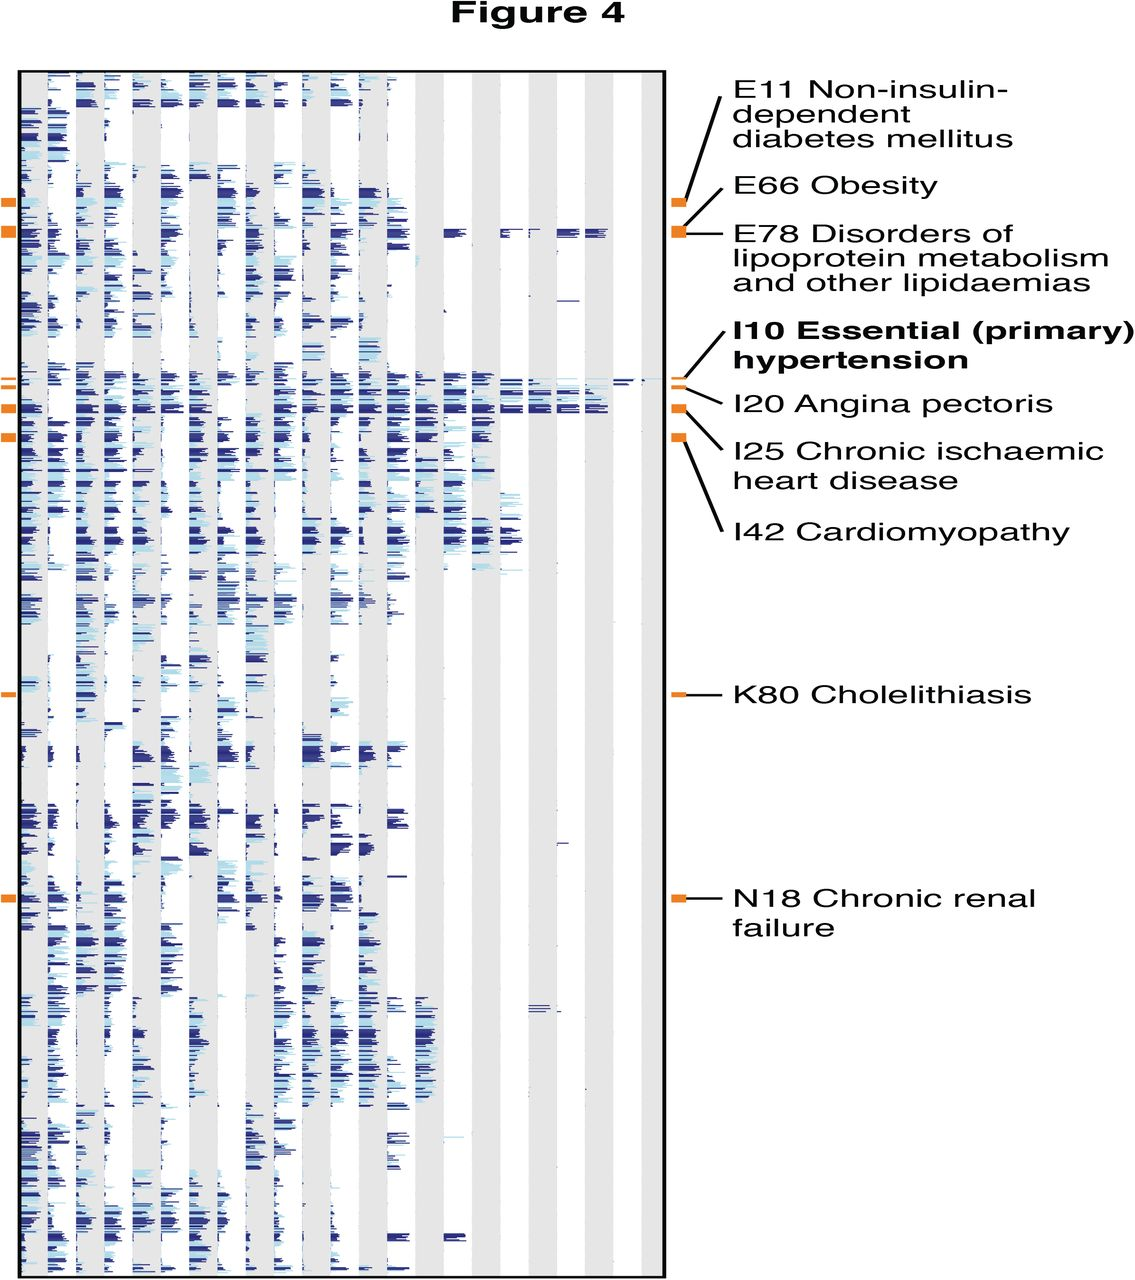 Systematic classification of shared components of genetic